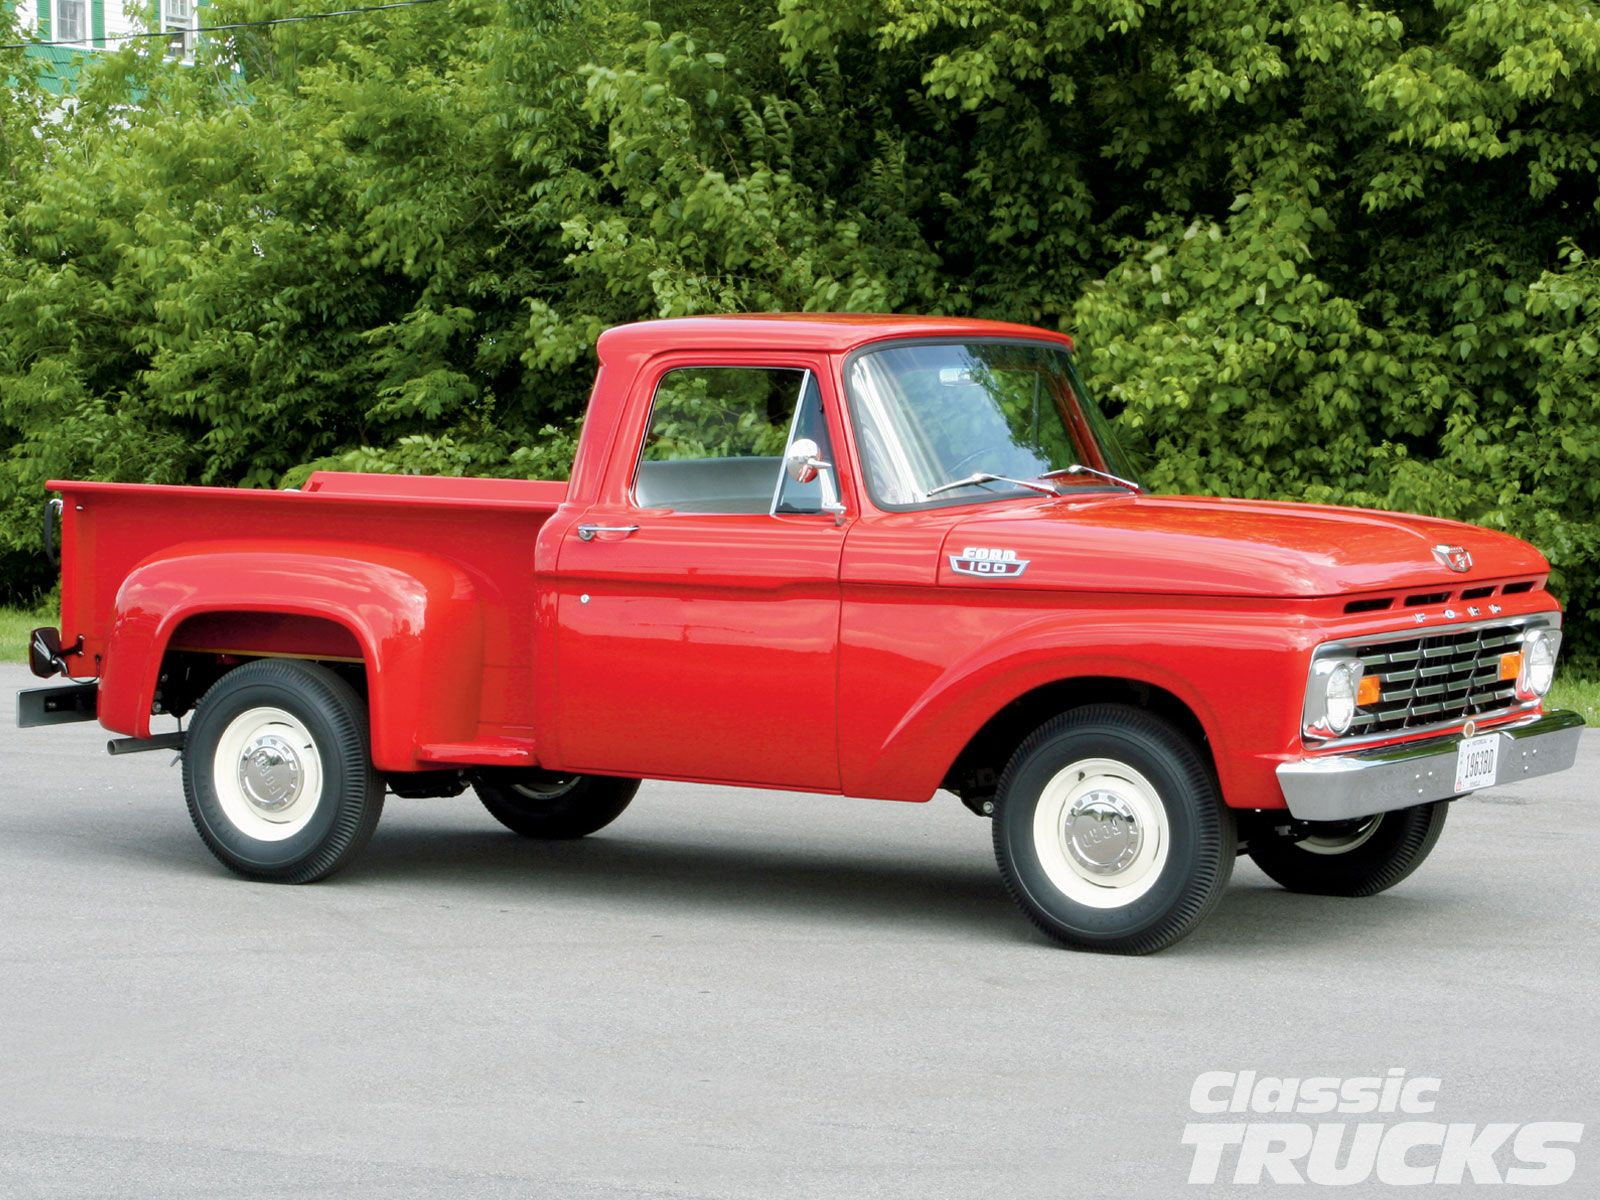 1963 ford f100 stock step side ford pickup ideas pinterest 1963 ford classic trucks magazine love this and hope to have one some day publicscrutiny Gallery